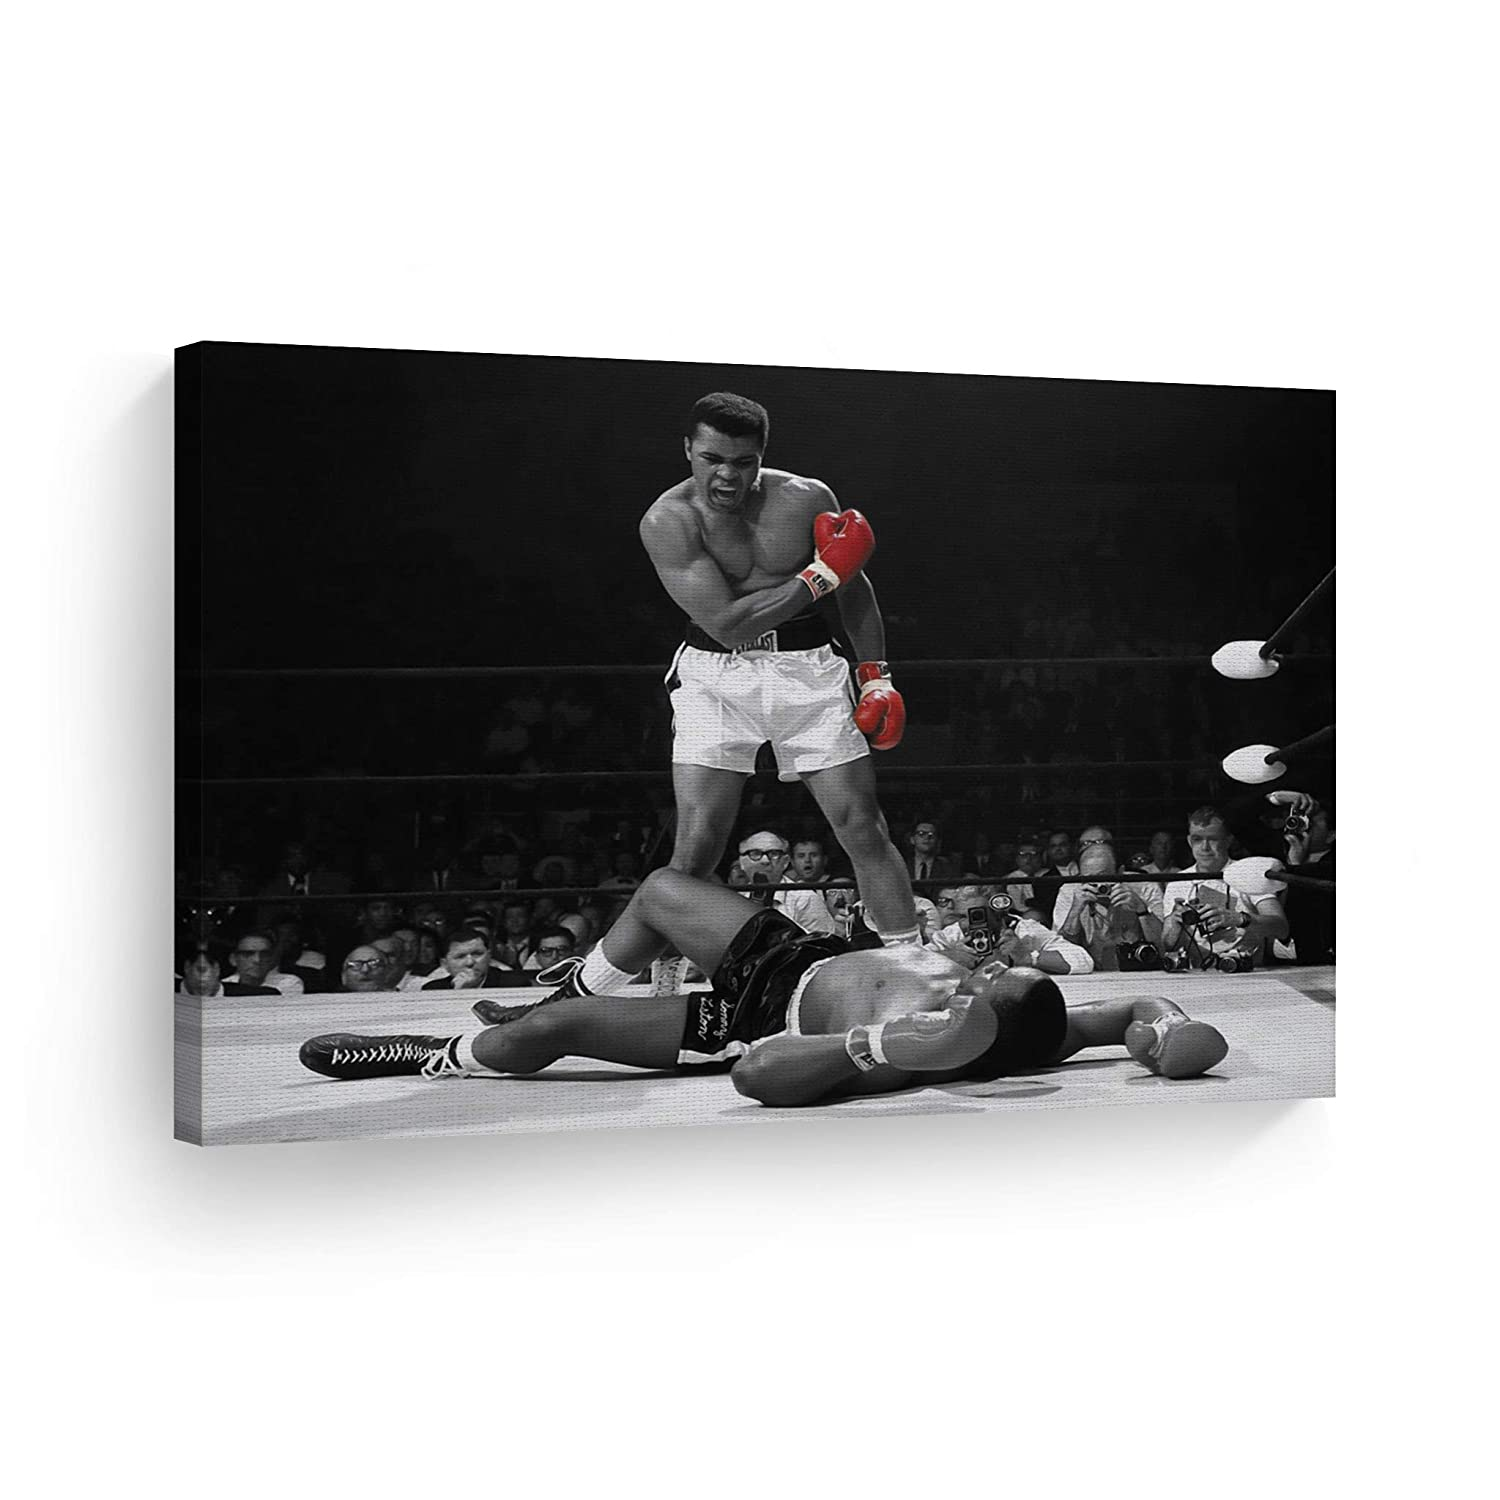 Smile Art Design A Famous Picture Muhammad Ali vs Sonny Liston Red Gloves Canvas Print First Minute First Round Knockout Art Wall Decor Artwork Ready to Hang%100 Made in The USA 24x36